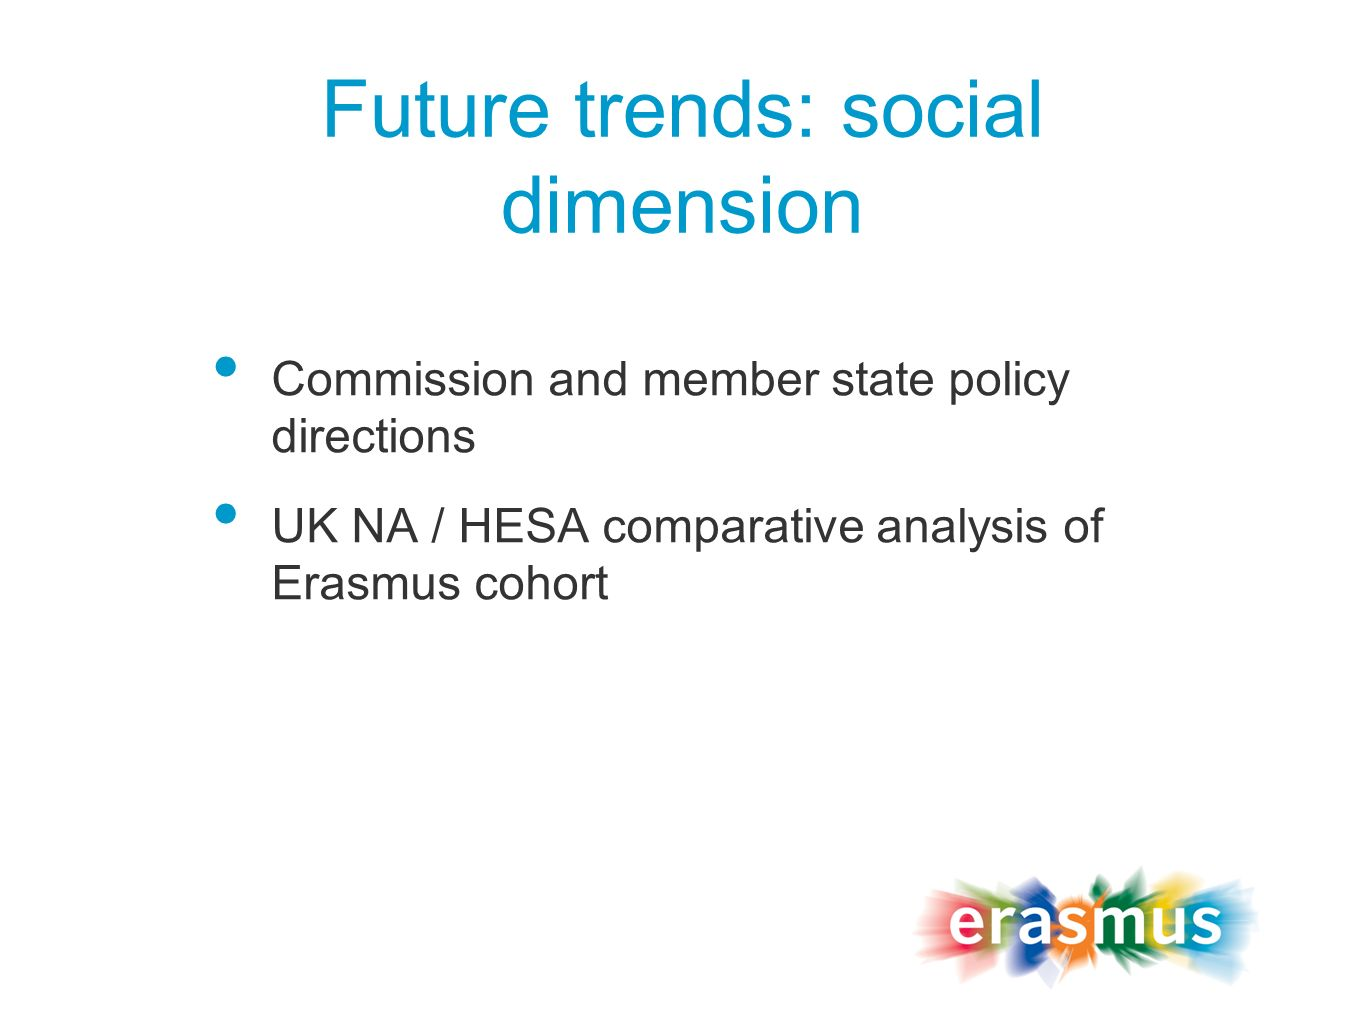 Future trends: social dimension Commission and member state policy directions UK NA / HESA comparative analysis of Erasmus cohort